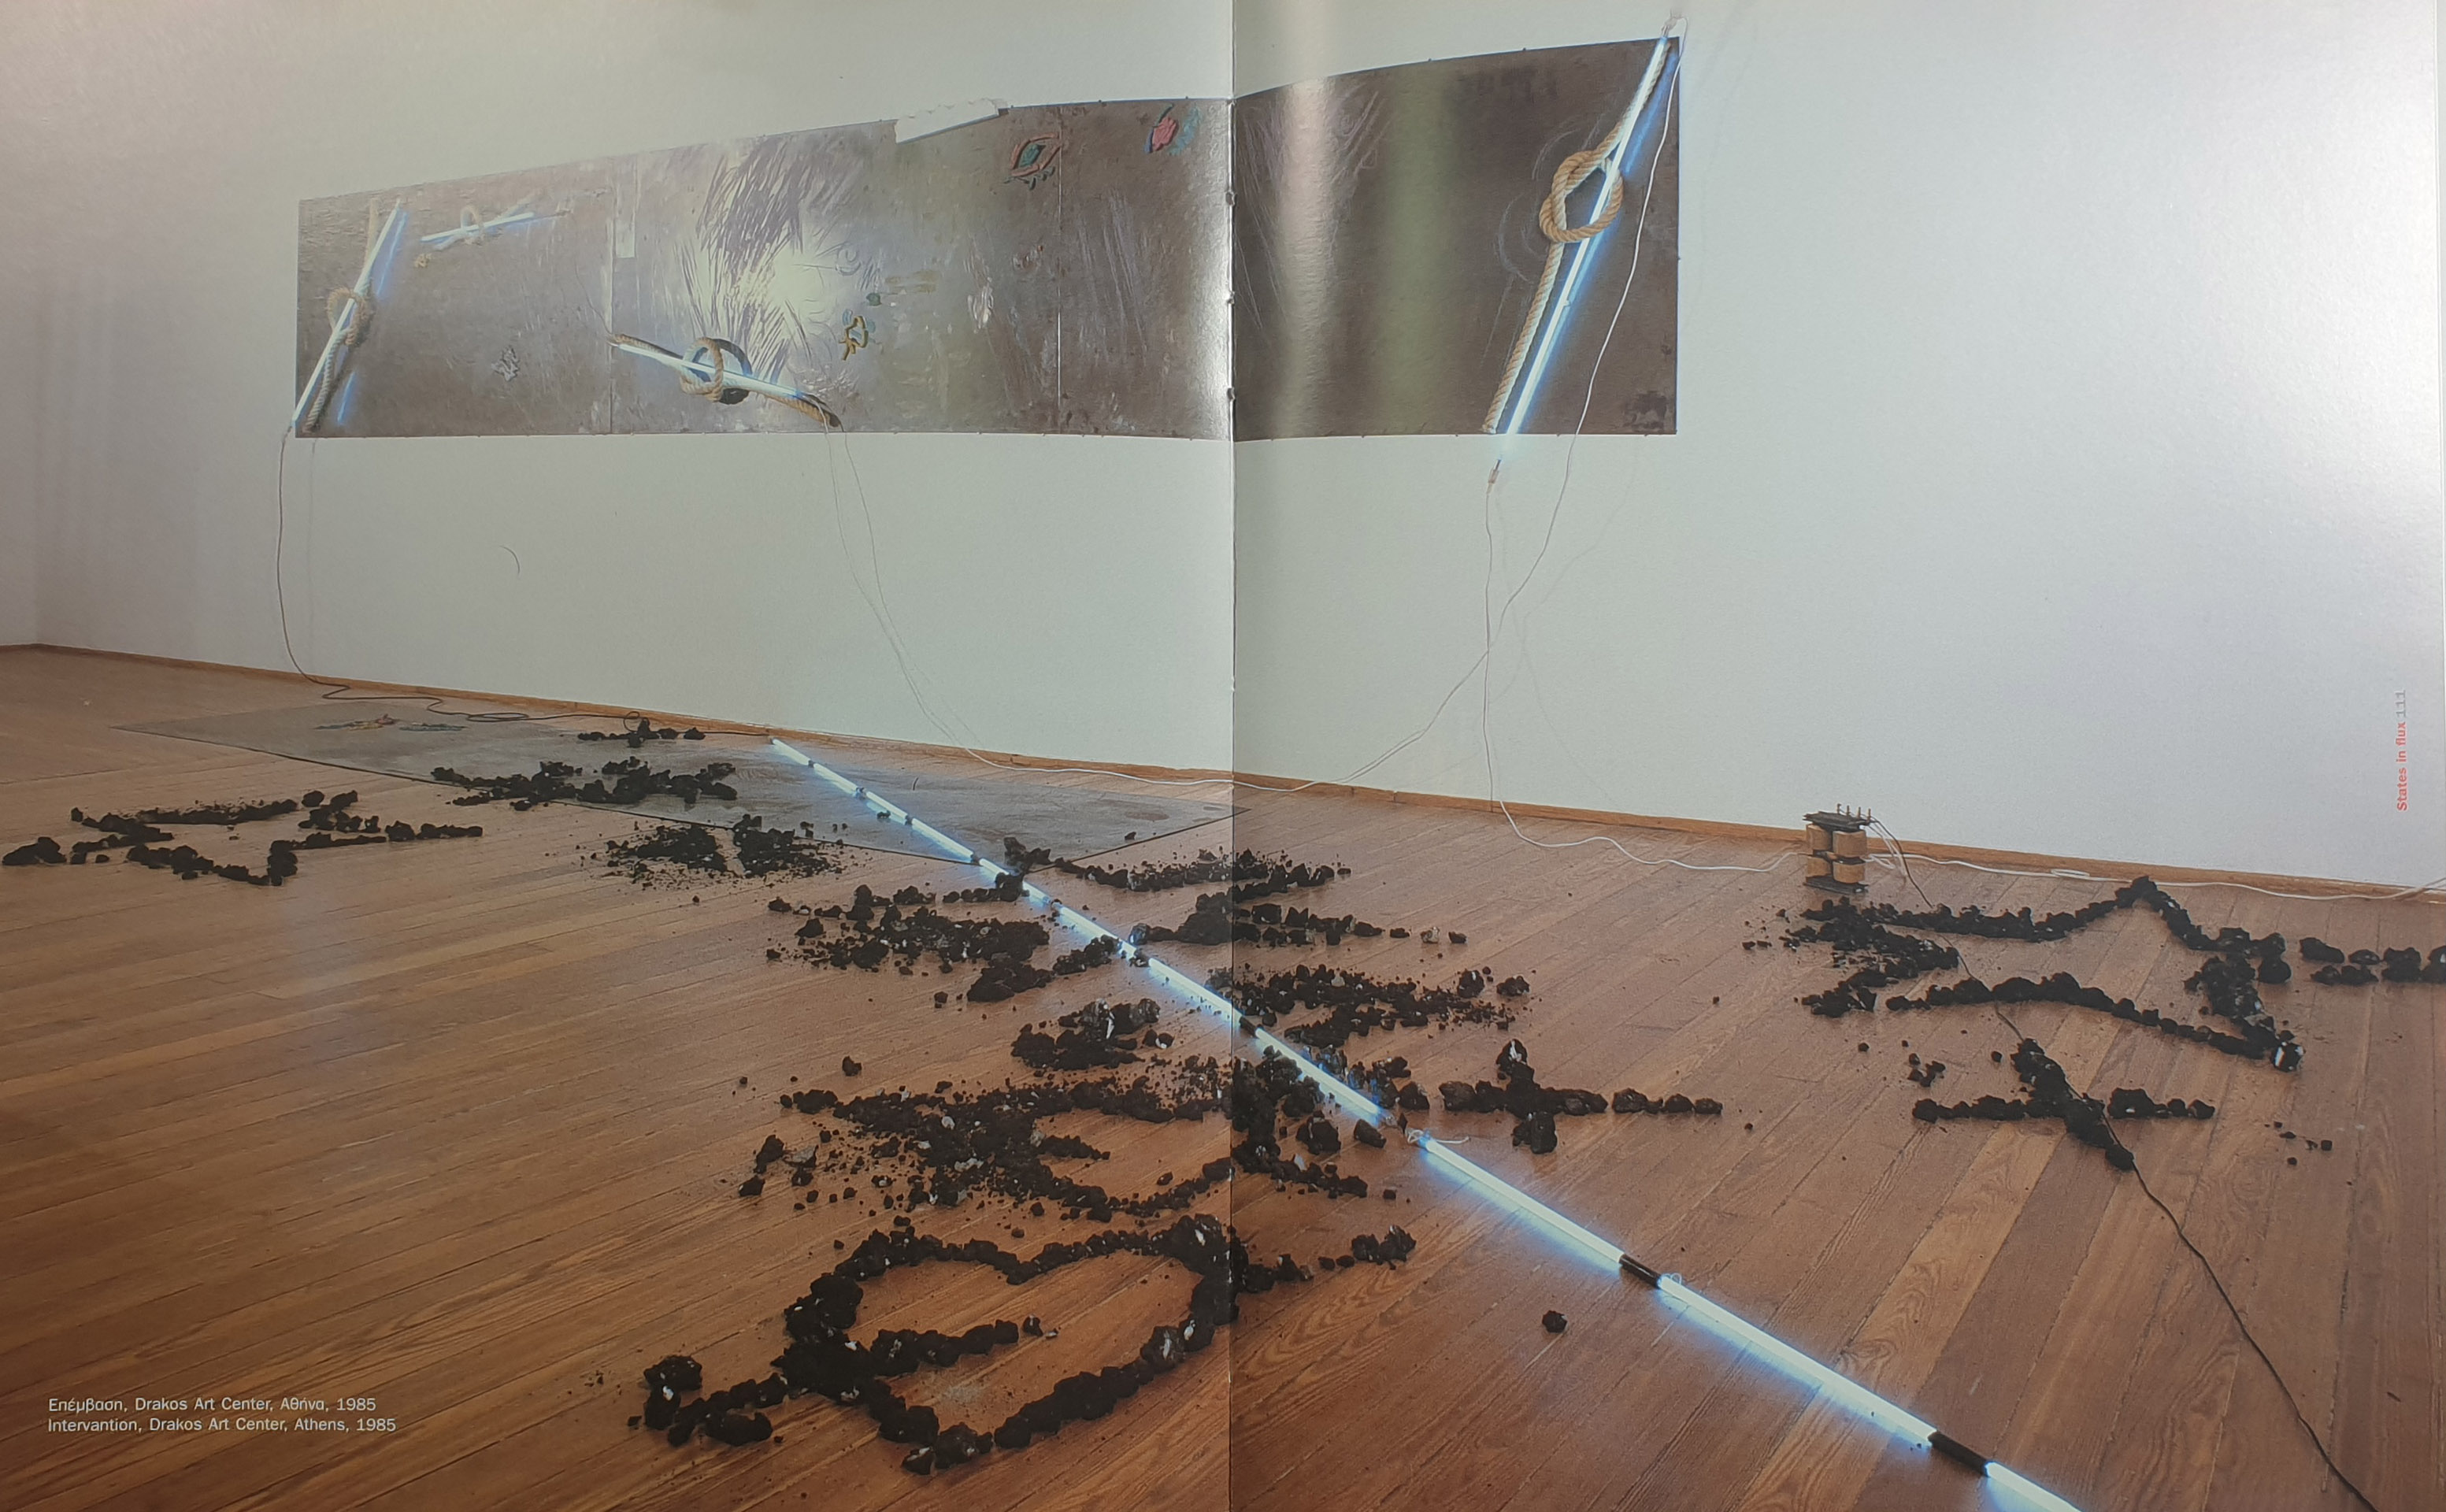 2.1.A (4028) YIANNIS BOUTEAS STATES IN FLUX 1970 2004 - INTERVENTION(Image 1)